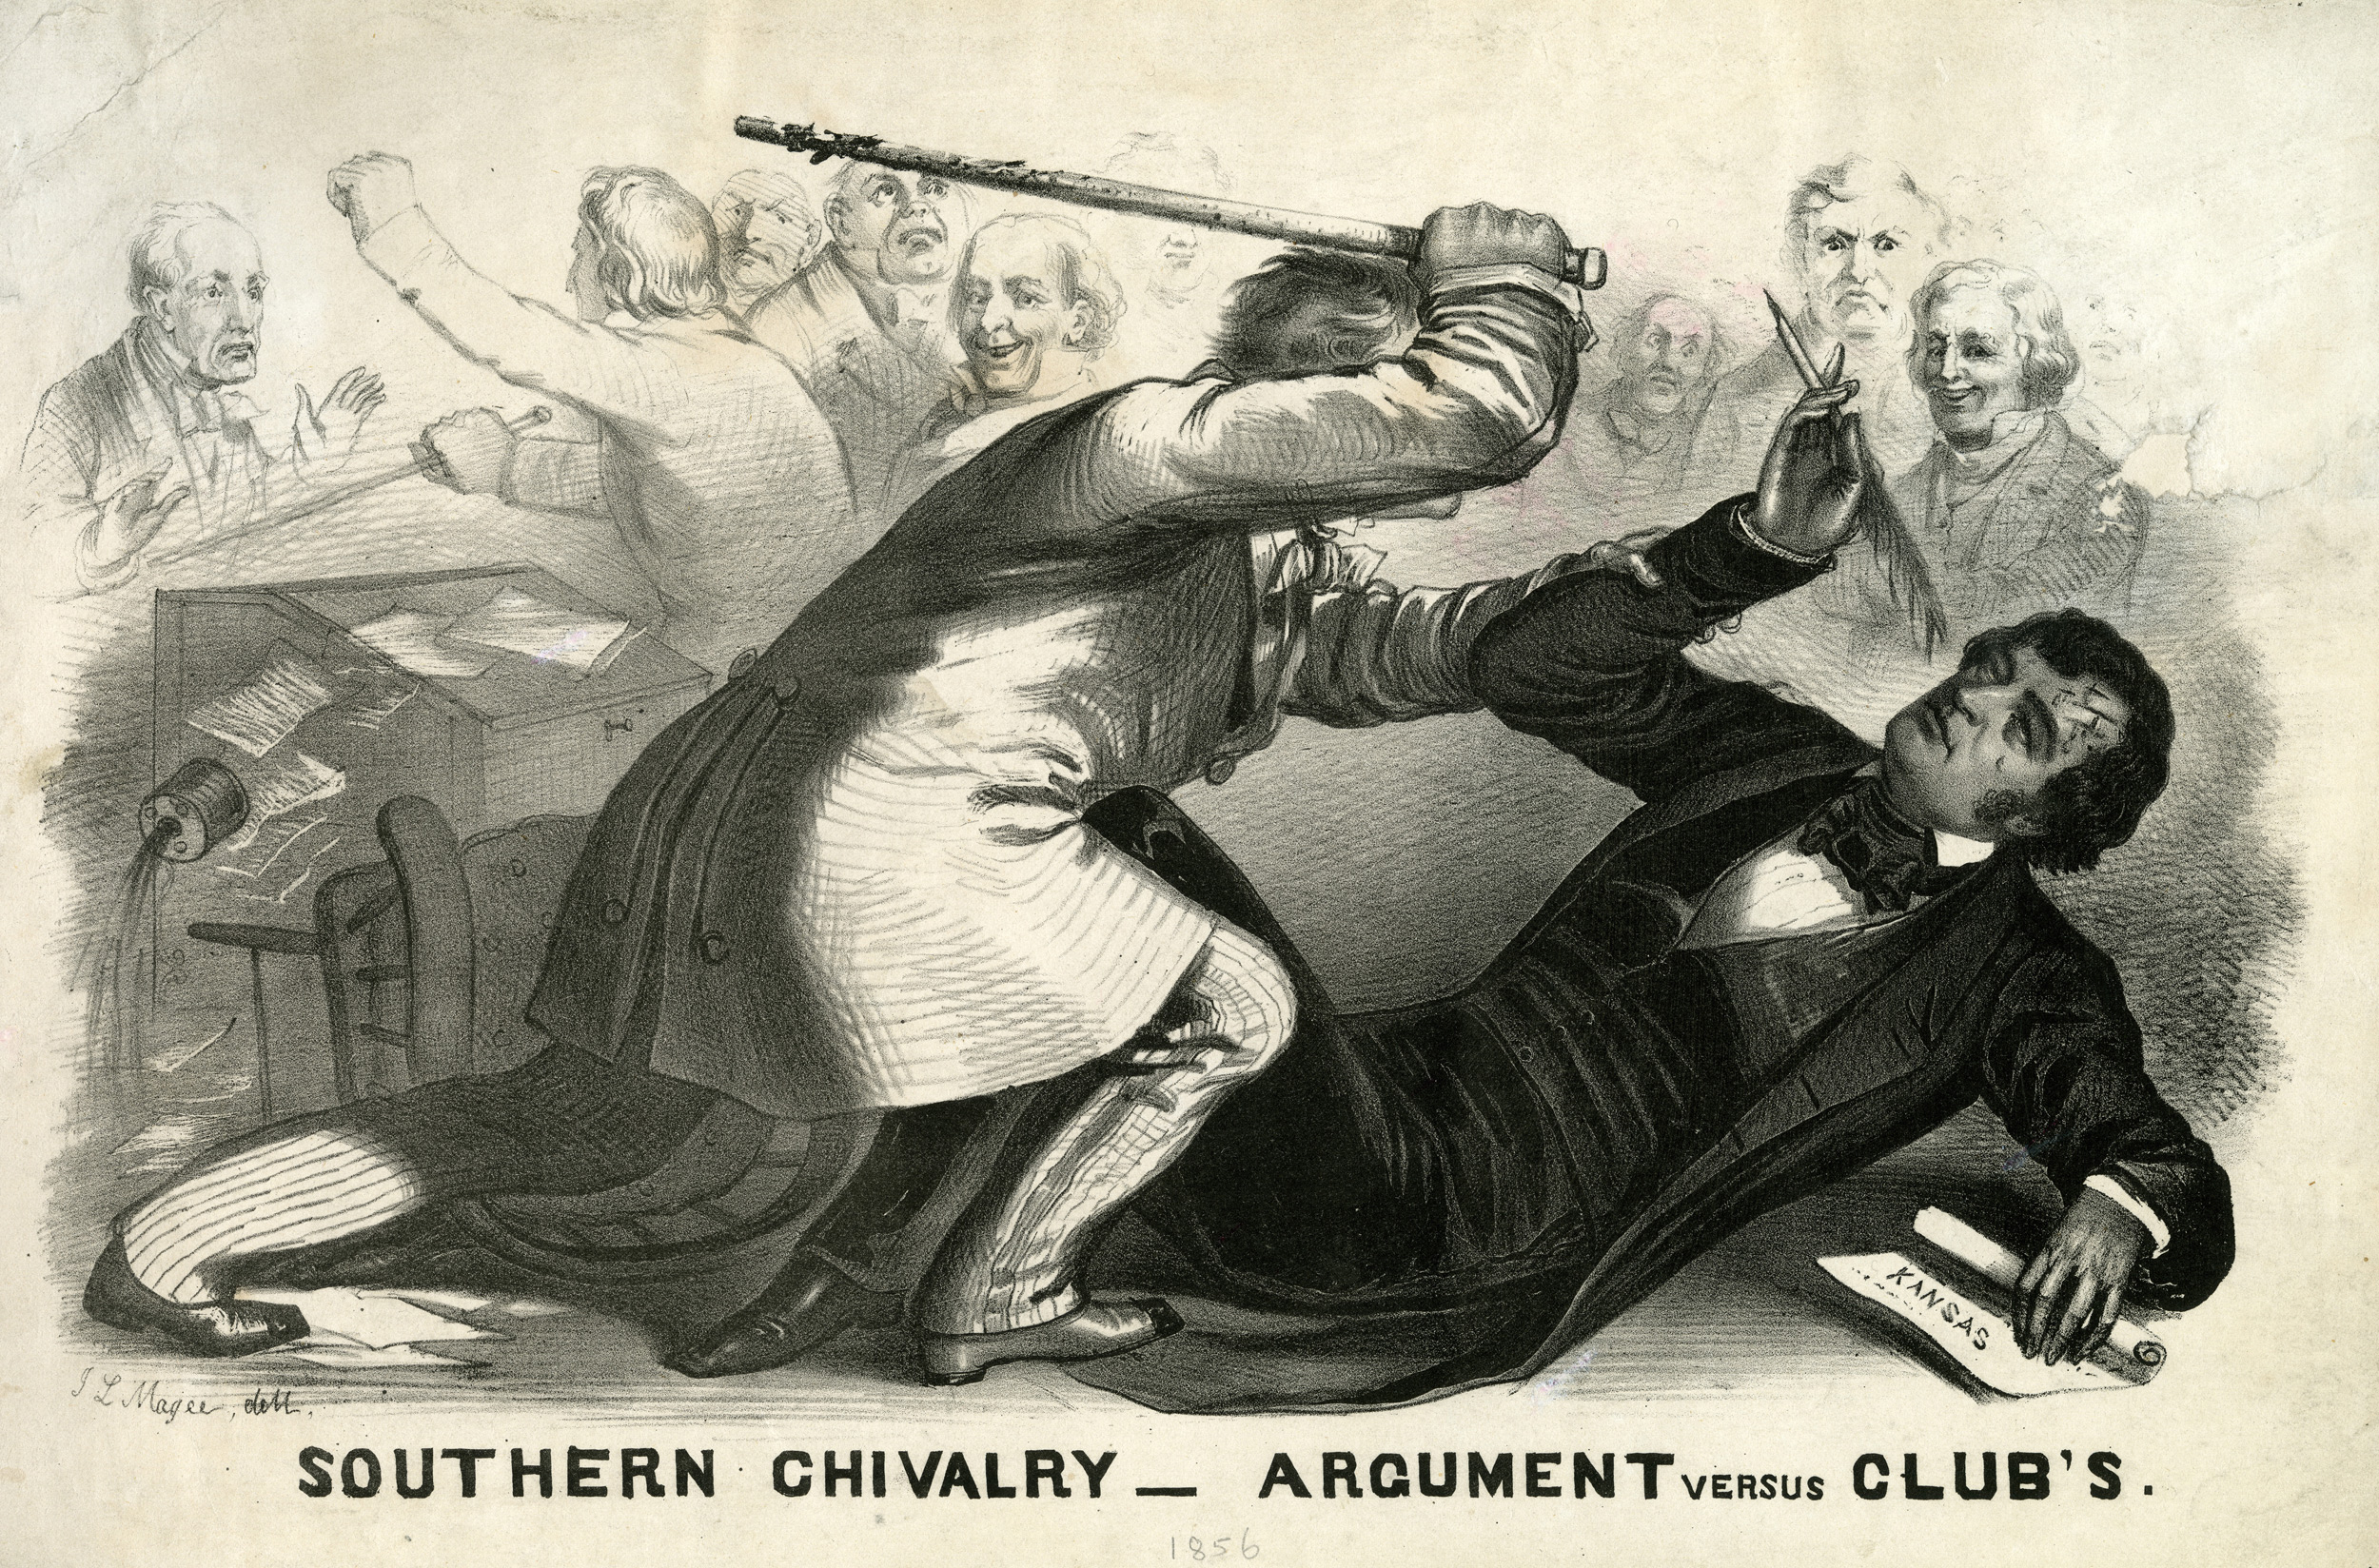 A lithograph cartoon depicting Preston Brooks' attack on Charles Sumner in the U.S. Senate chamber.